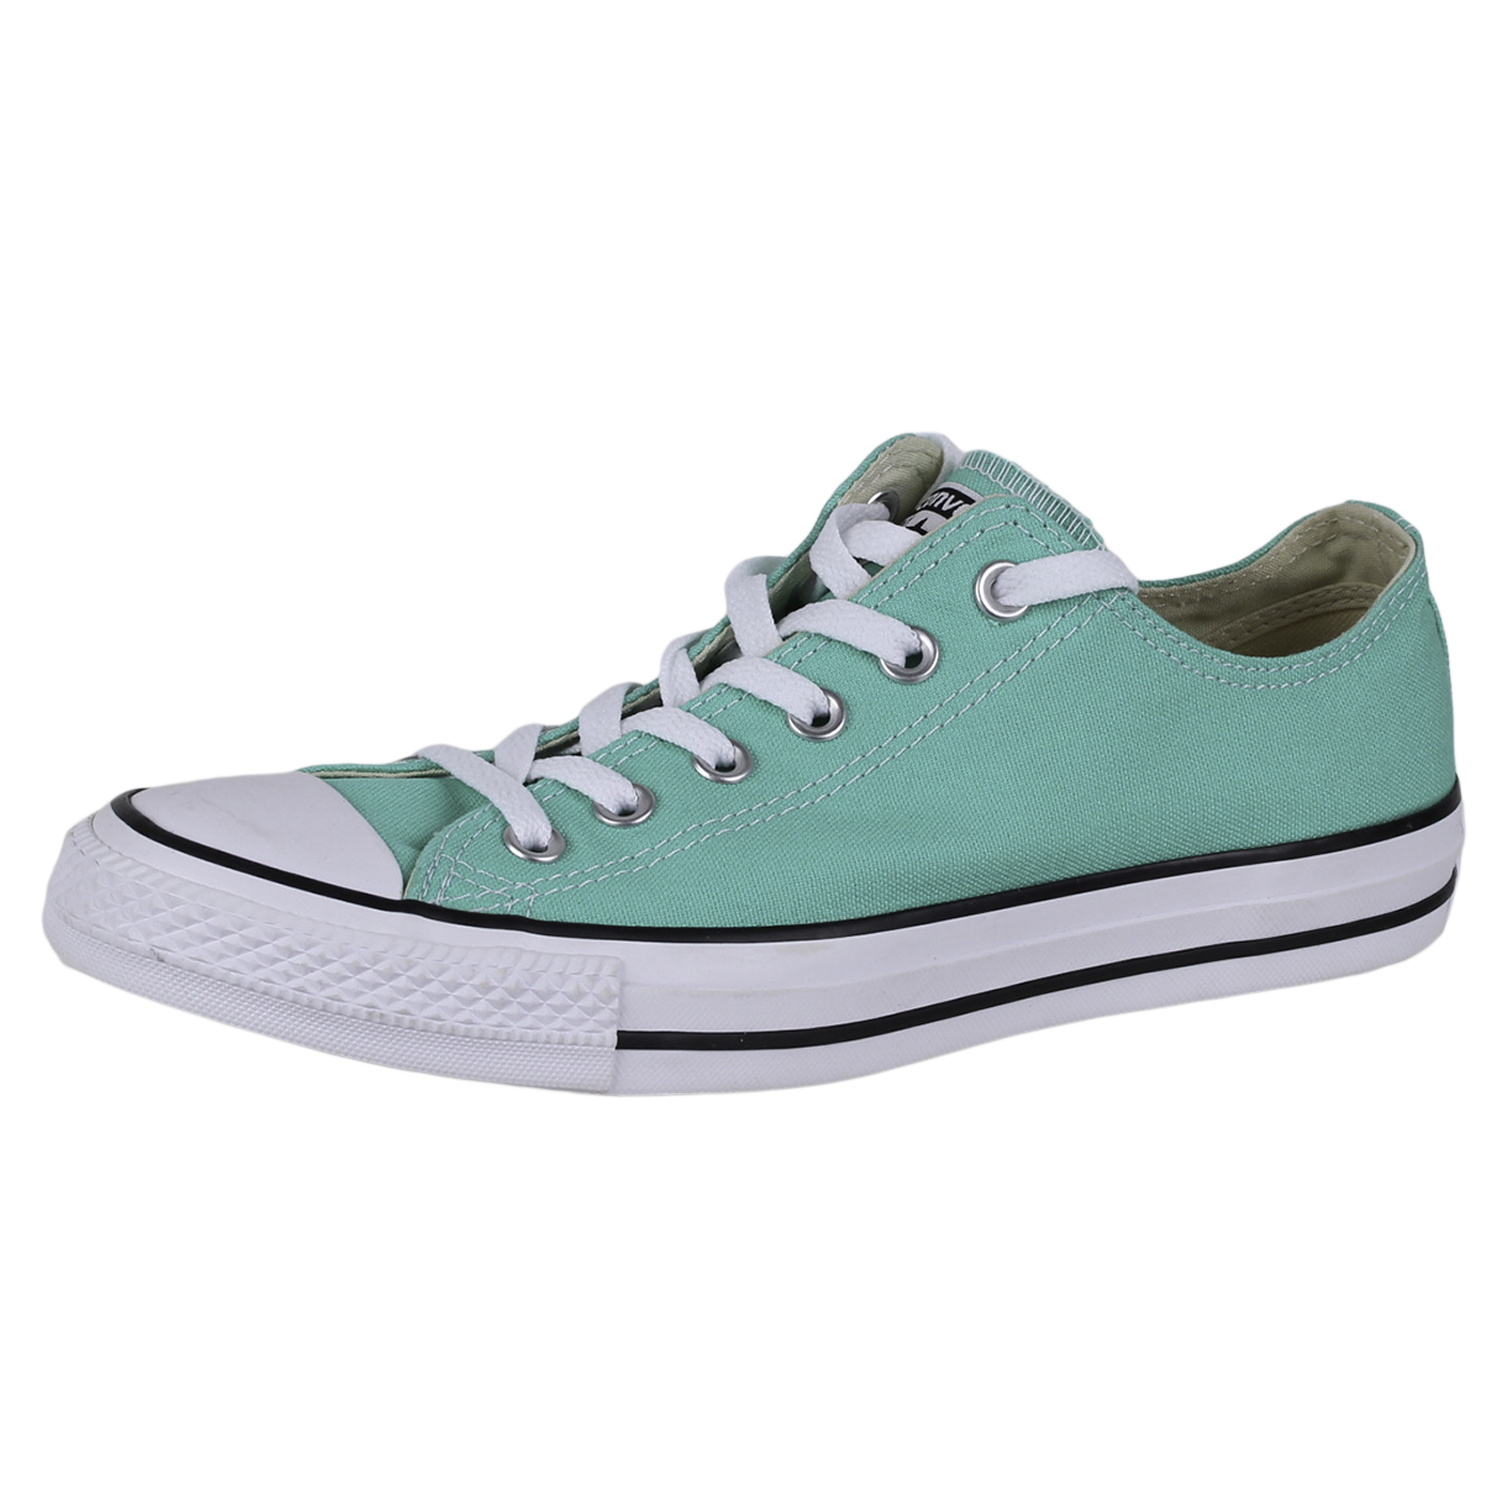 ad8b8b997395 Converse Chuck Taylor All Star Low Top Sneakers 155737F-7.5 Menta ...